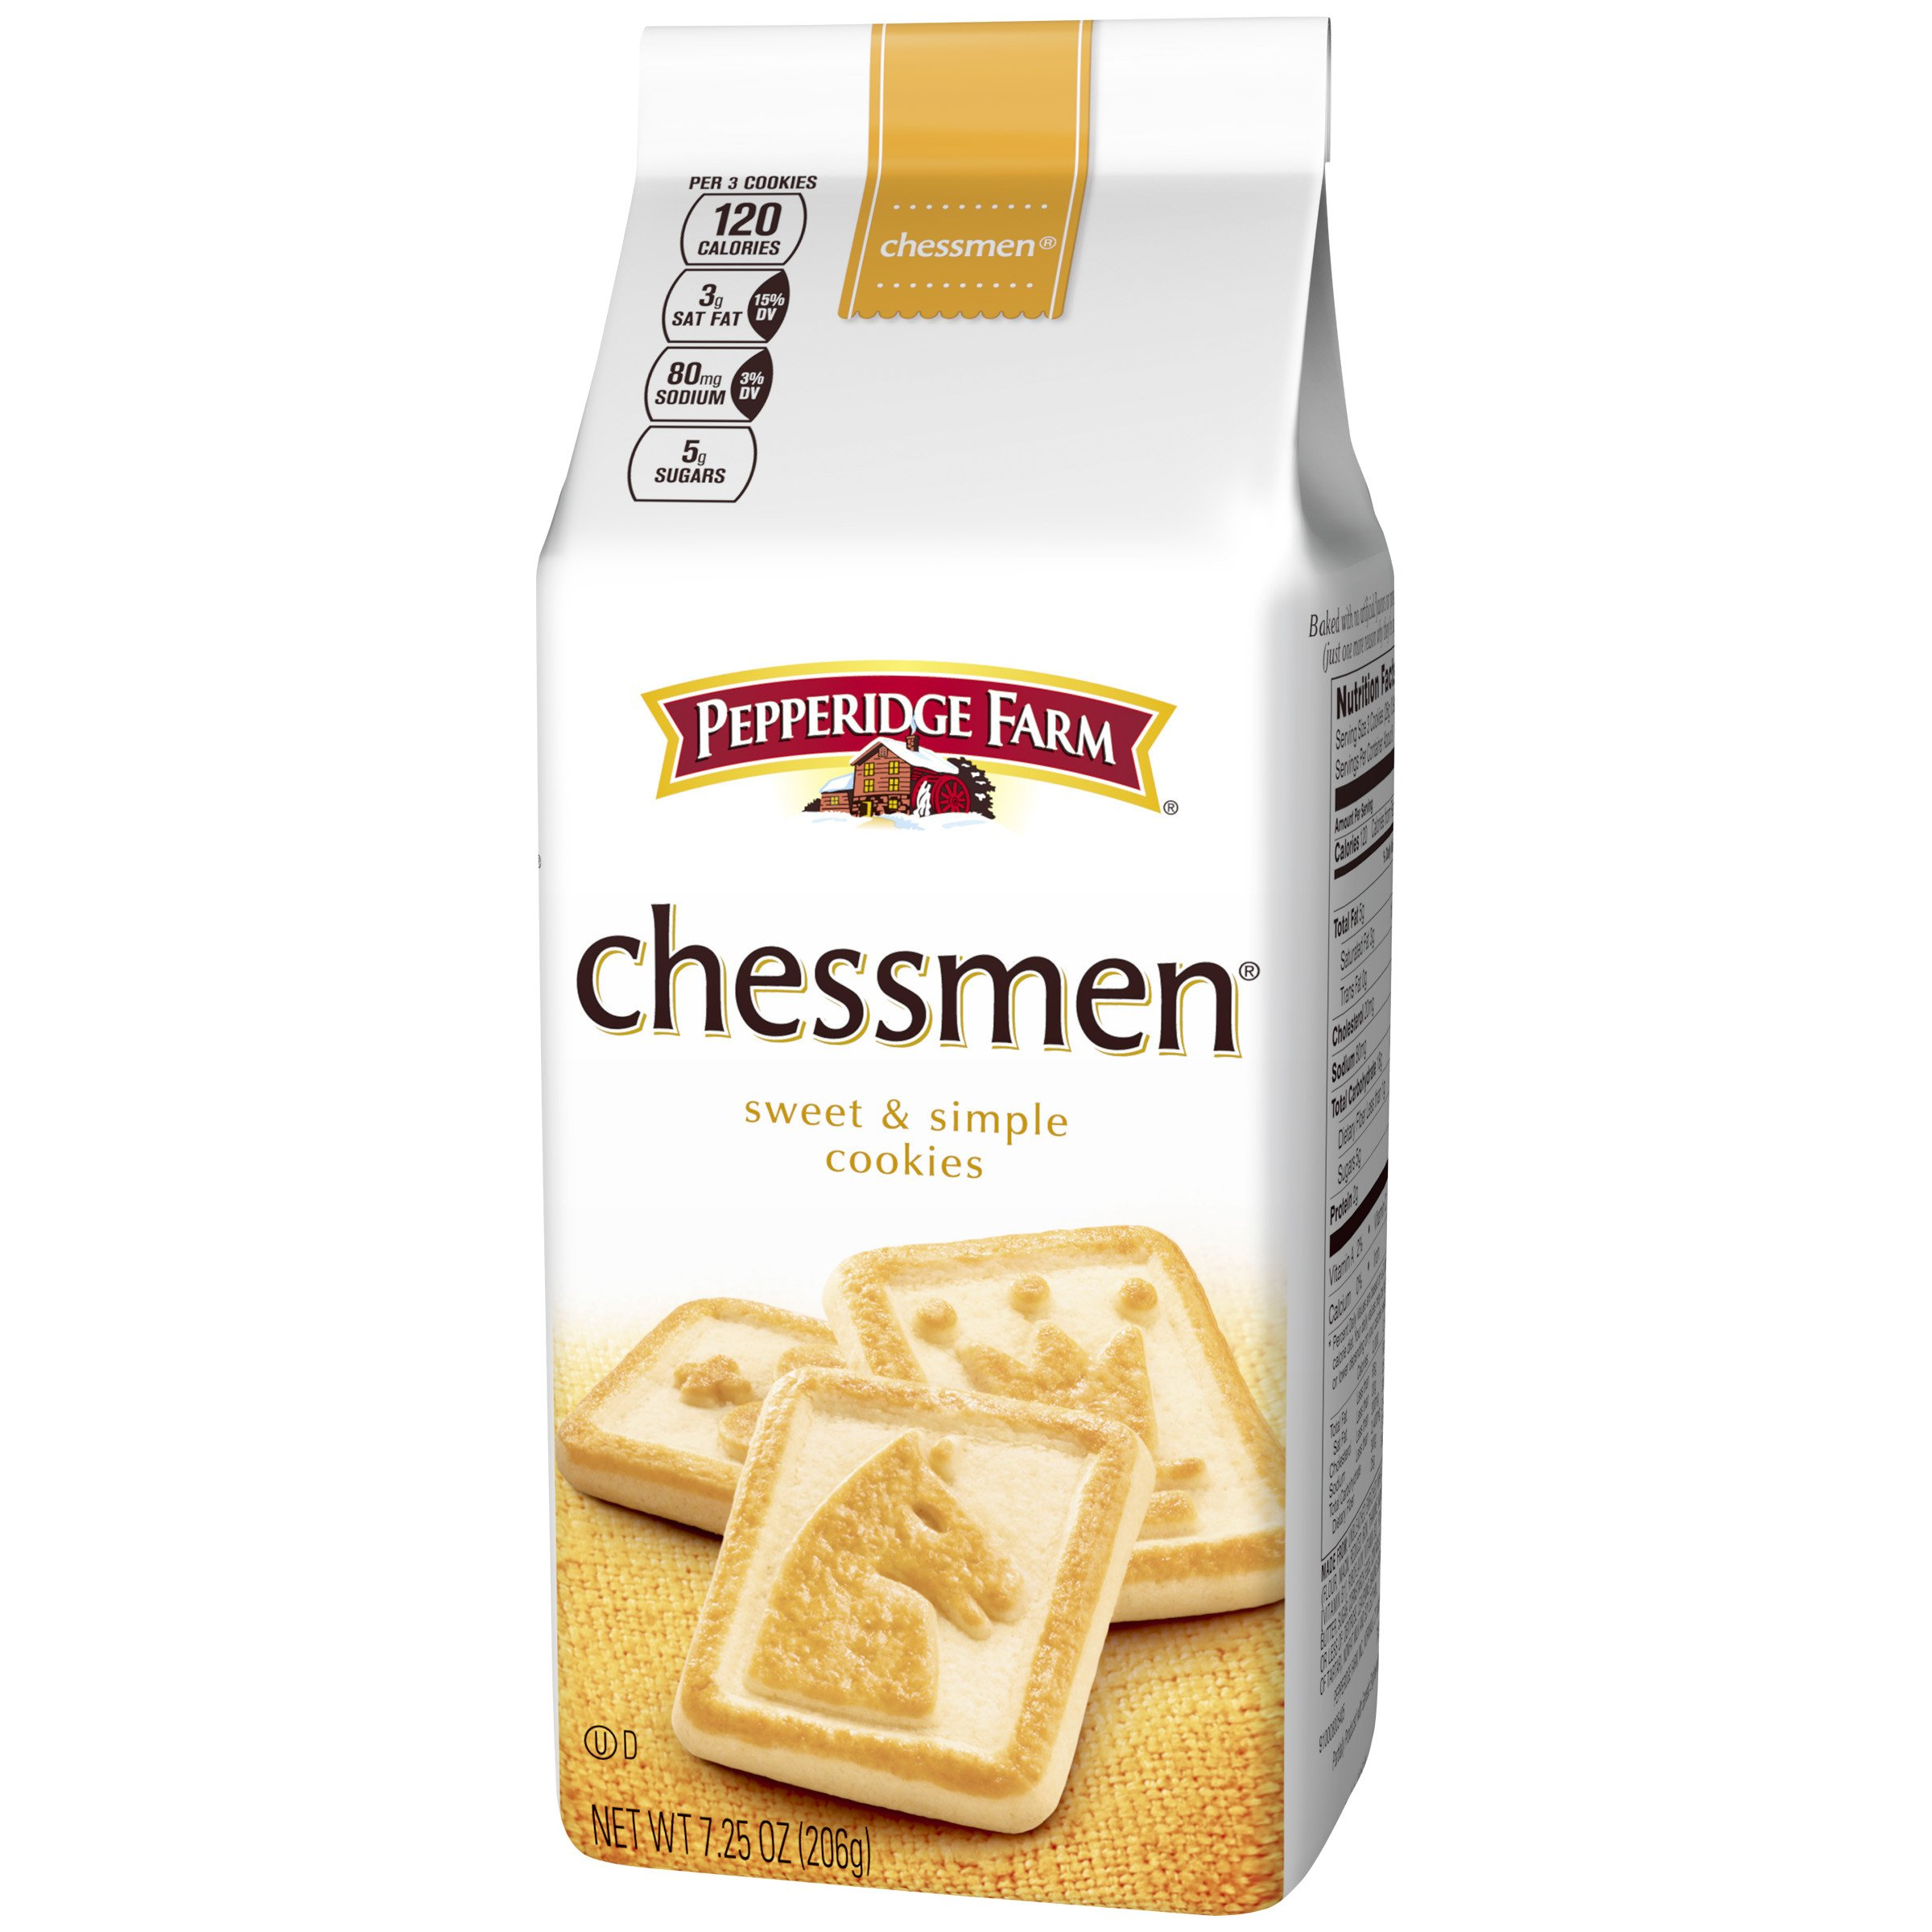 Pepperidge Farm, Chessmen, Cookies, 7.25 oz., Bag, 24-count by Pepperidge Farm (Image #5)